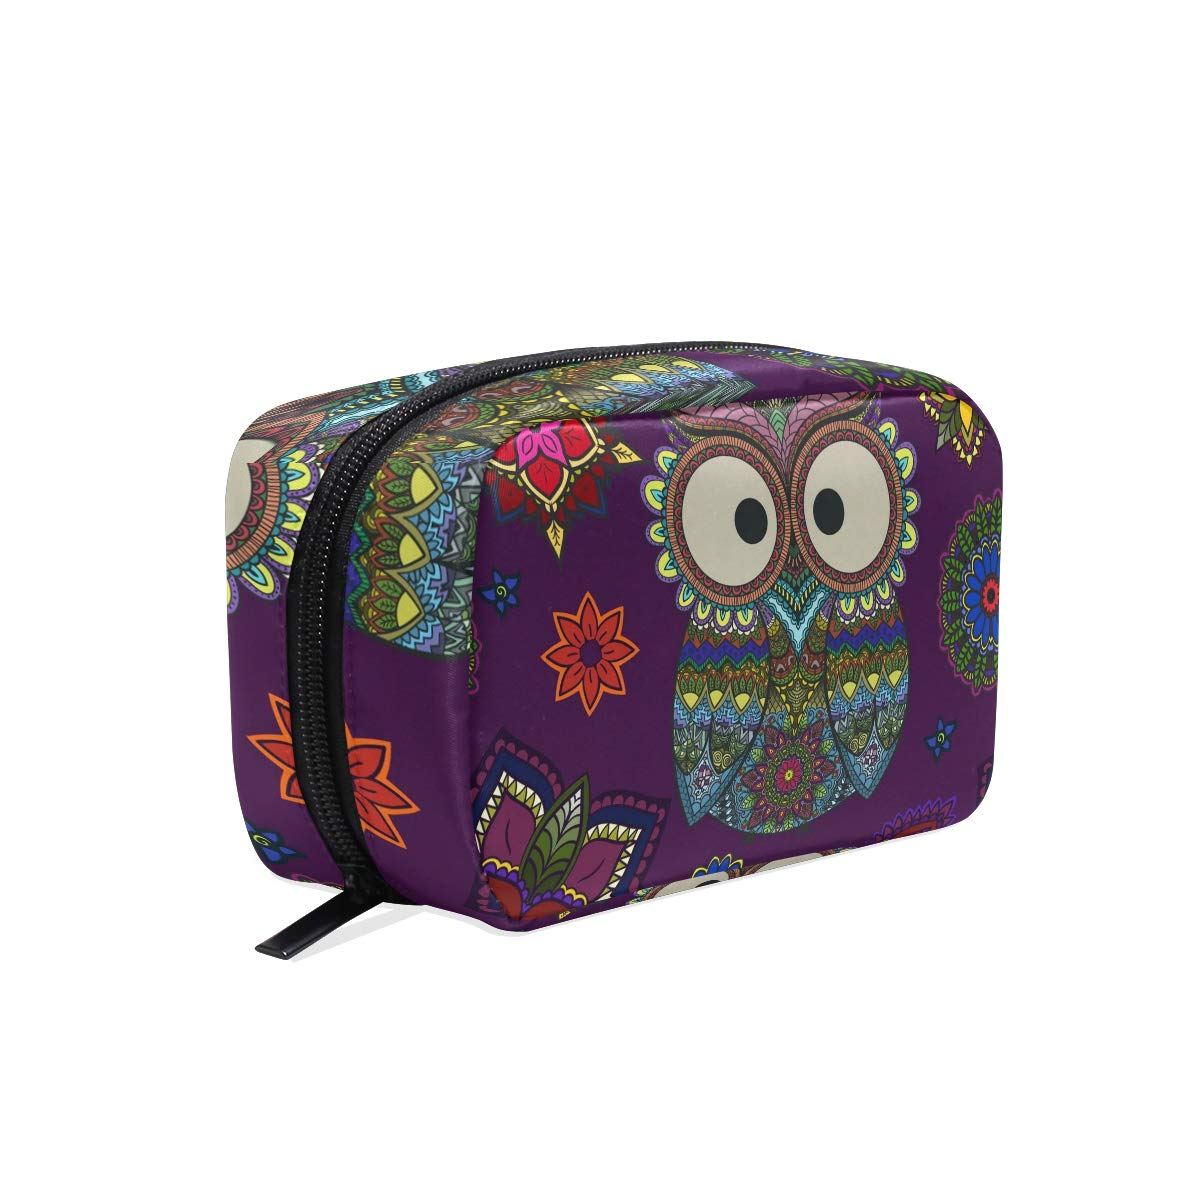 Makeup Bag Portable Travel Cosmetic Train Case Retro Owl Toiletry Bag Organizer Accessories Case Tools Case for Beauty Women